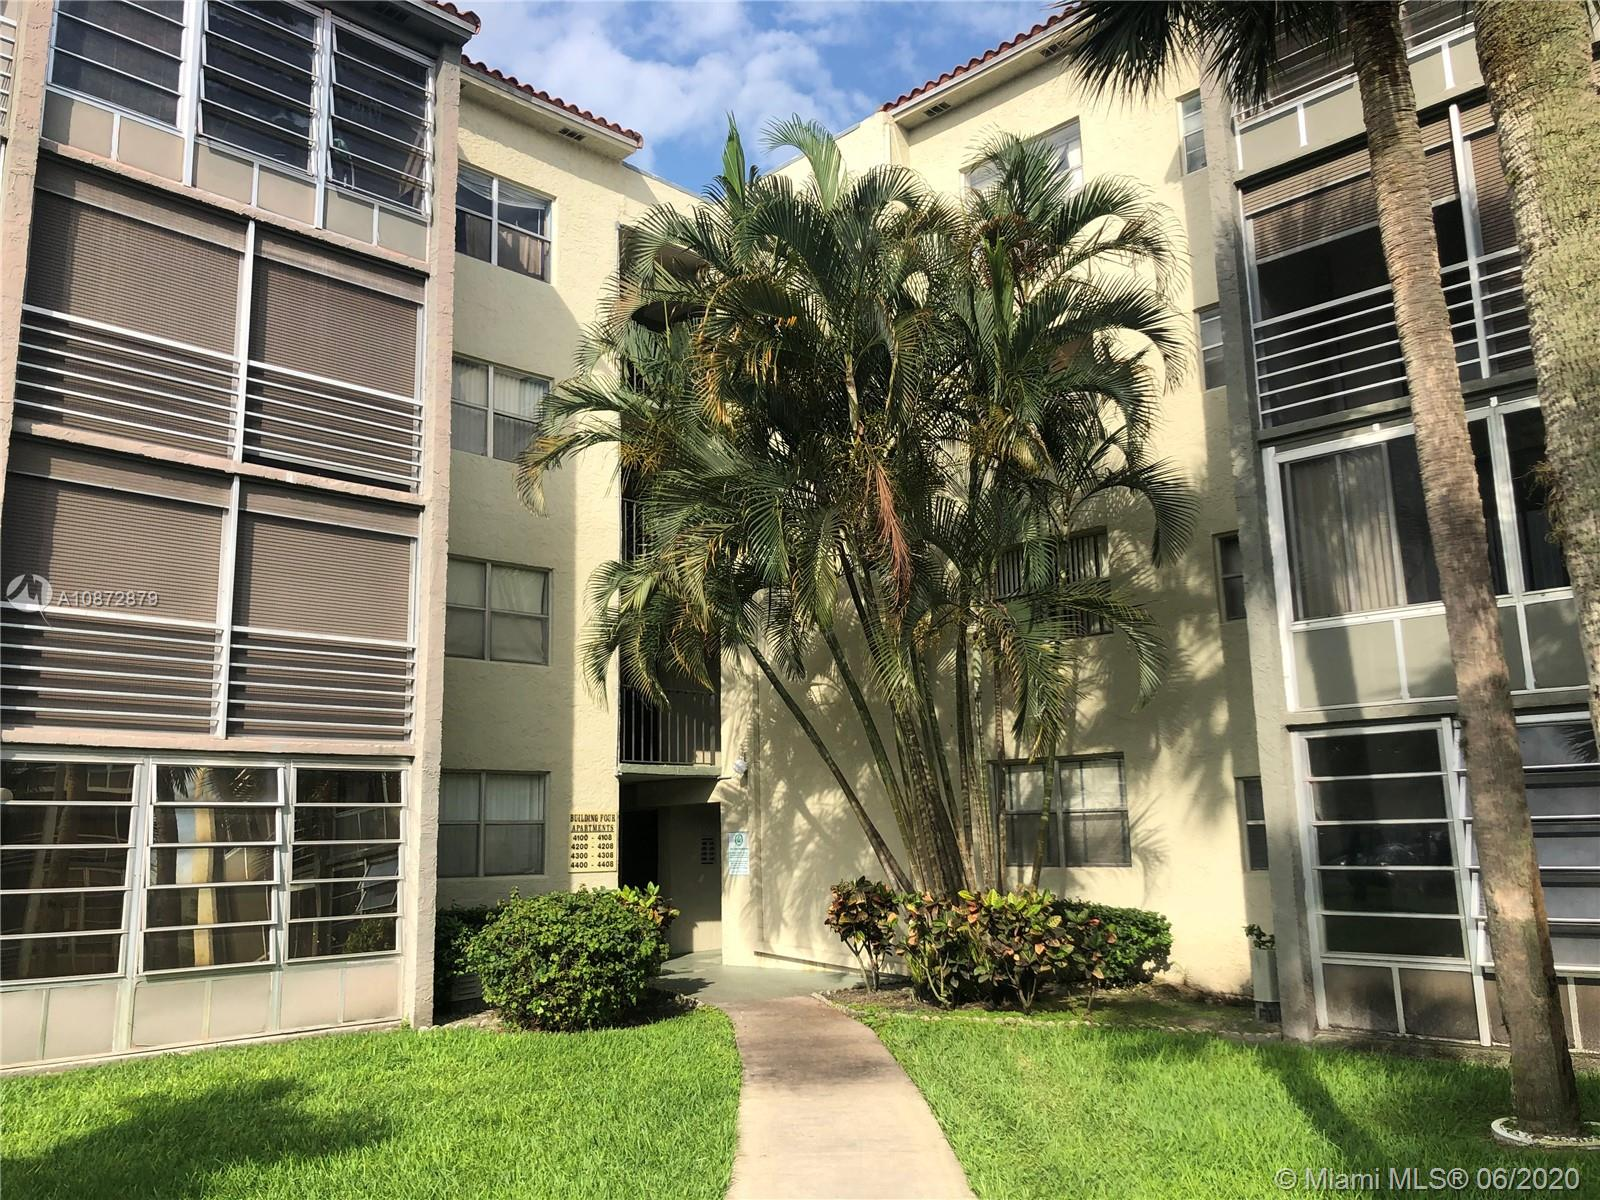 Beautiful Gated Community , spacious 2 bed / 2 bath , Upgrade kitchen  , Quiet building , walking distance to Hampton park , publix ,walmart Restaurants and more  , nicely maintenance ,club house, pool , association fee include cable , water, trash ,insurance  and all amenities . You can rented right way , No Aged Restrictions .